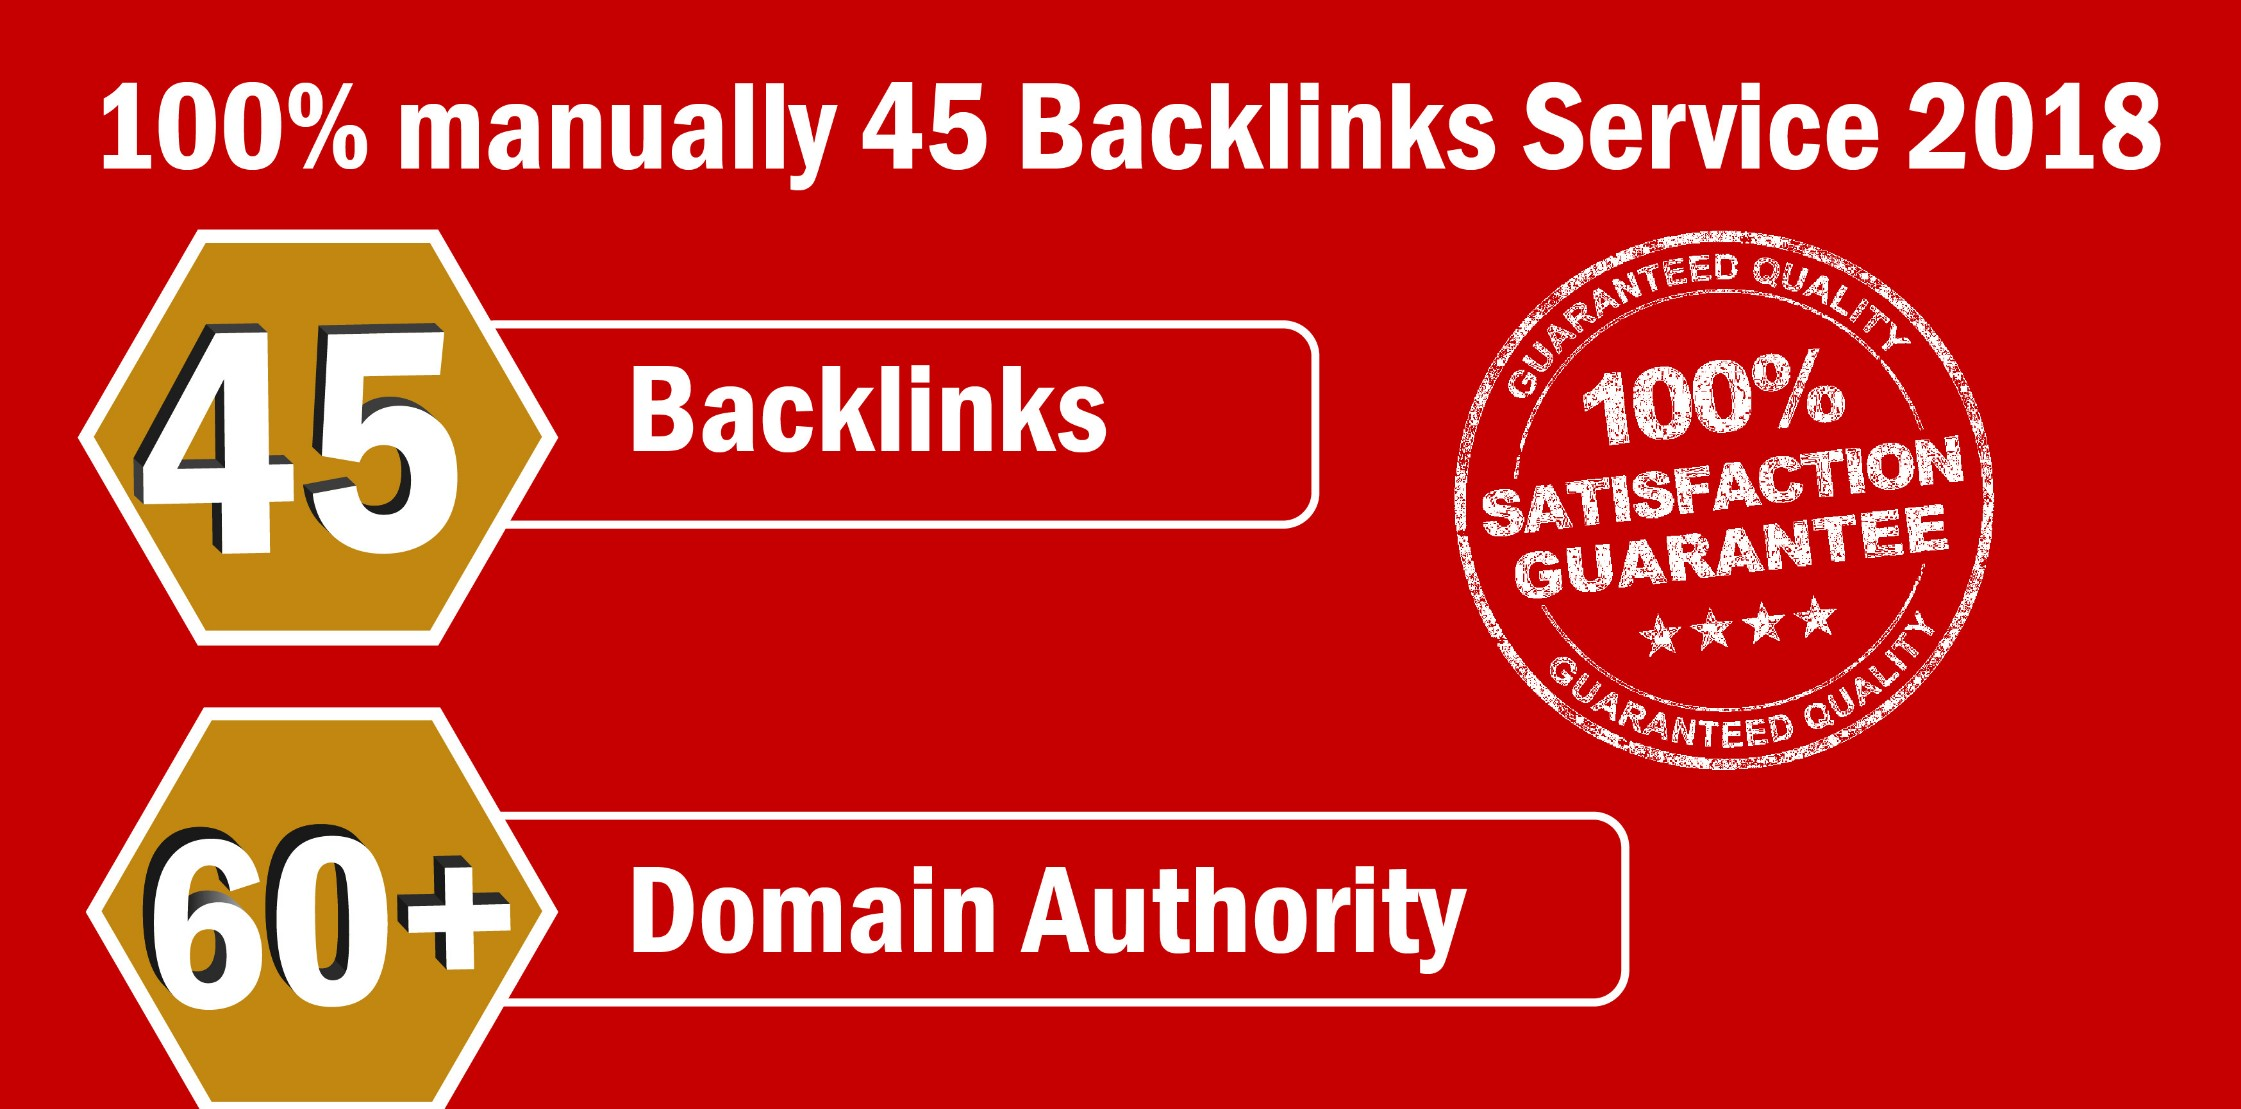 Limited Time- 45 Backlinks from High DA-60+ Domains-Skyrocket your Google RANKINGS NOW for 5